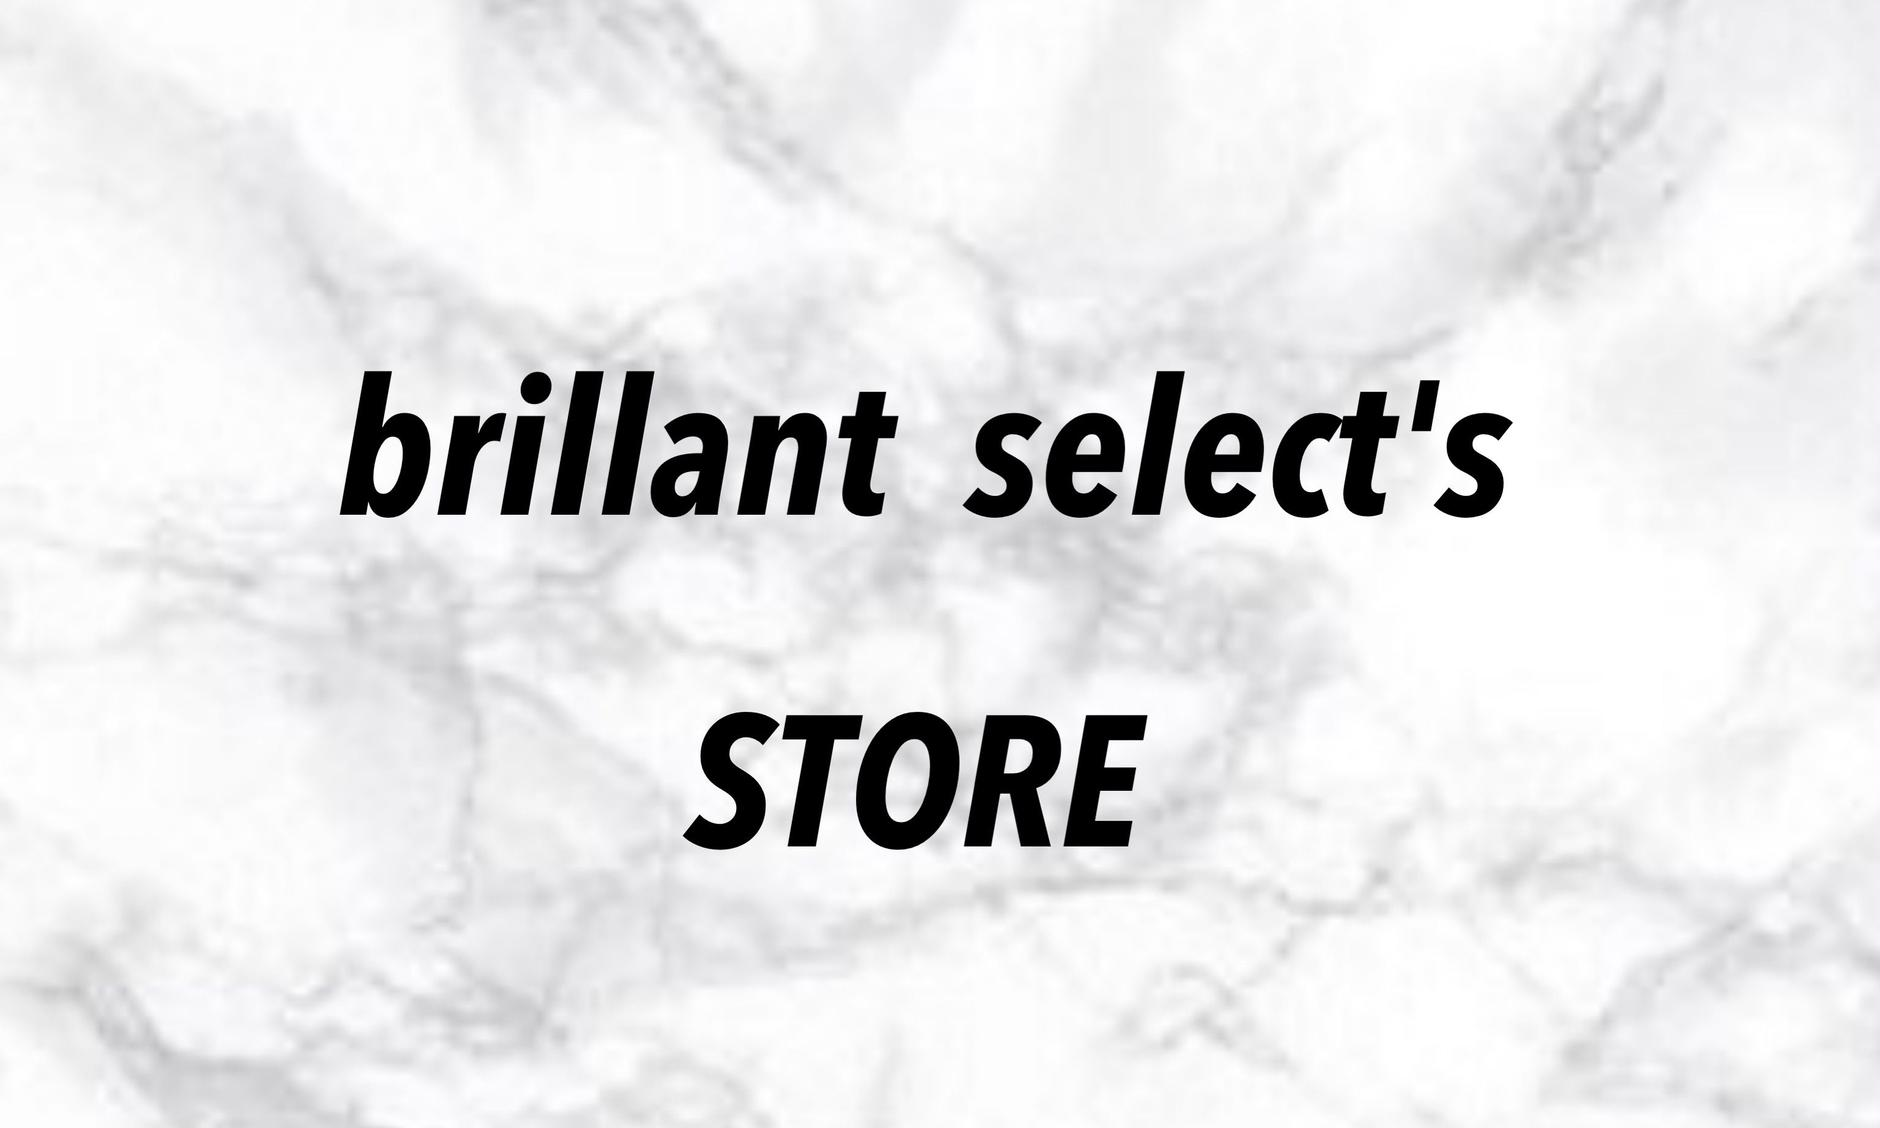 brillantselect's STORE